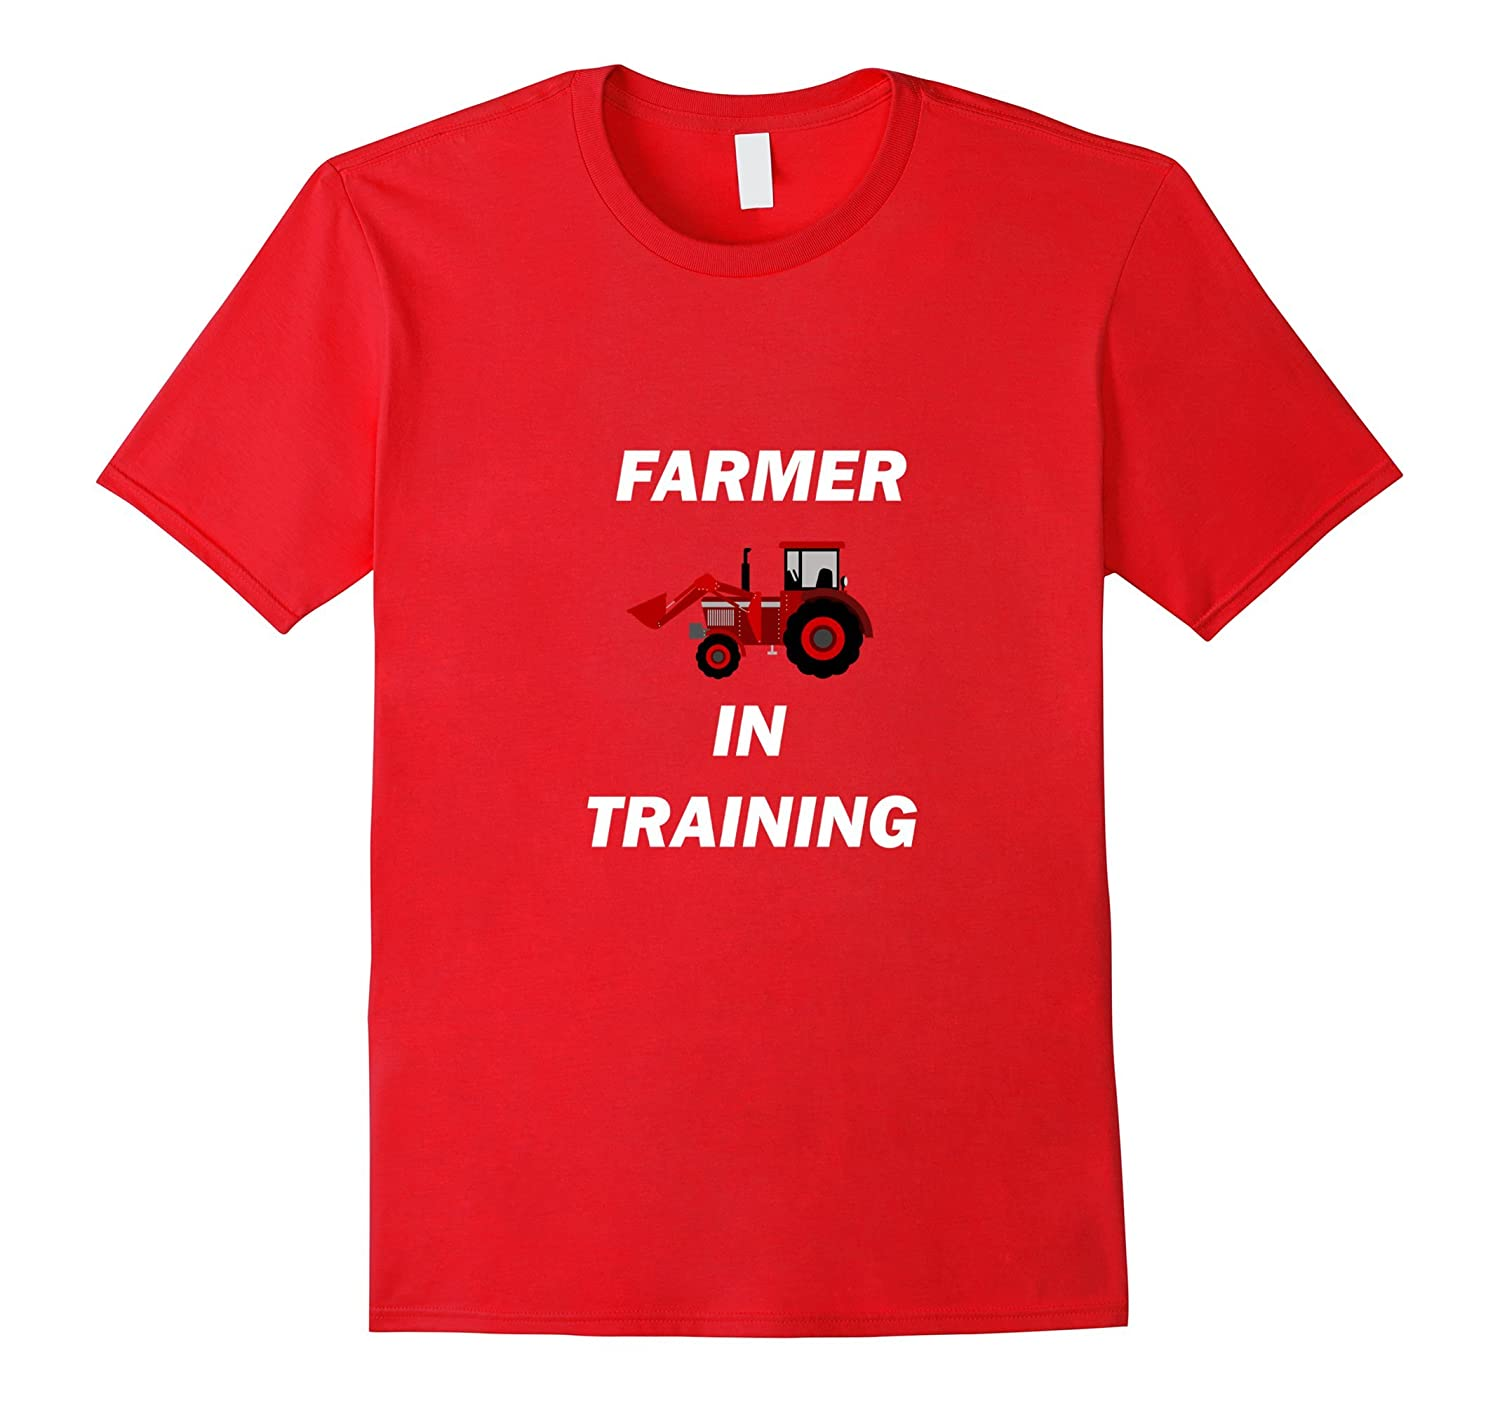 Farmer In Training Tractor Shirt For Boys Or Girls-FL